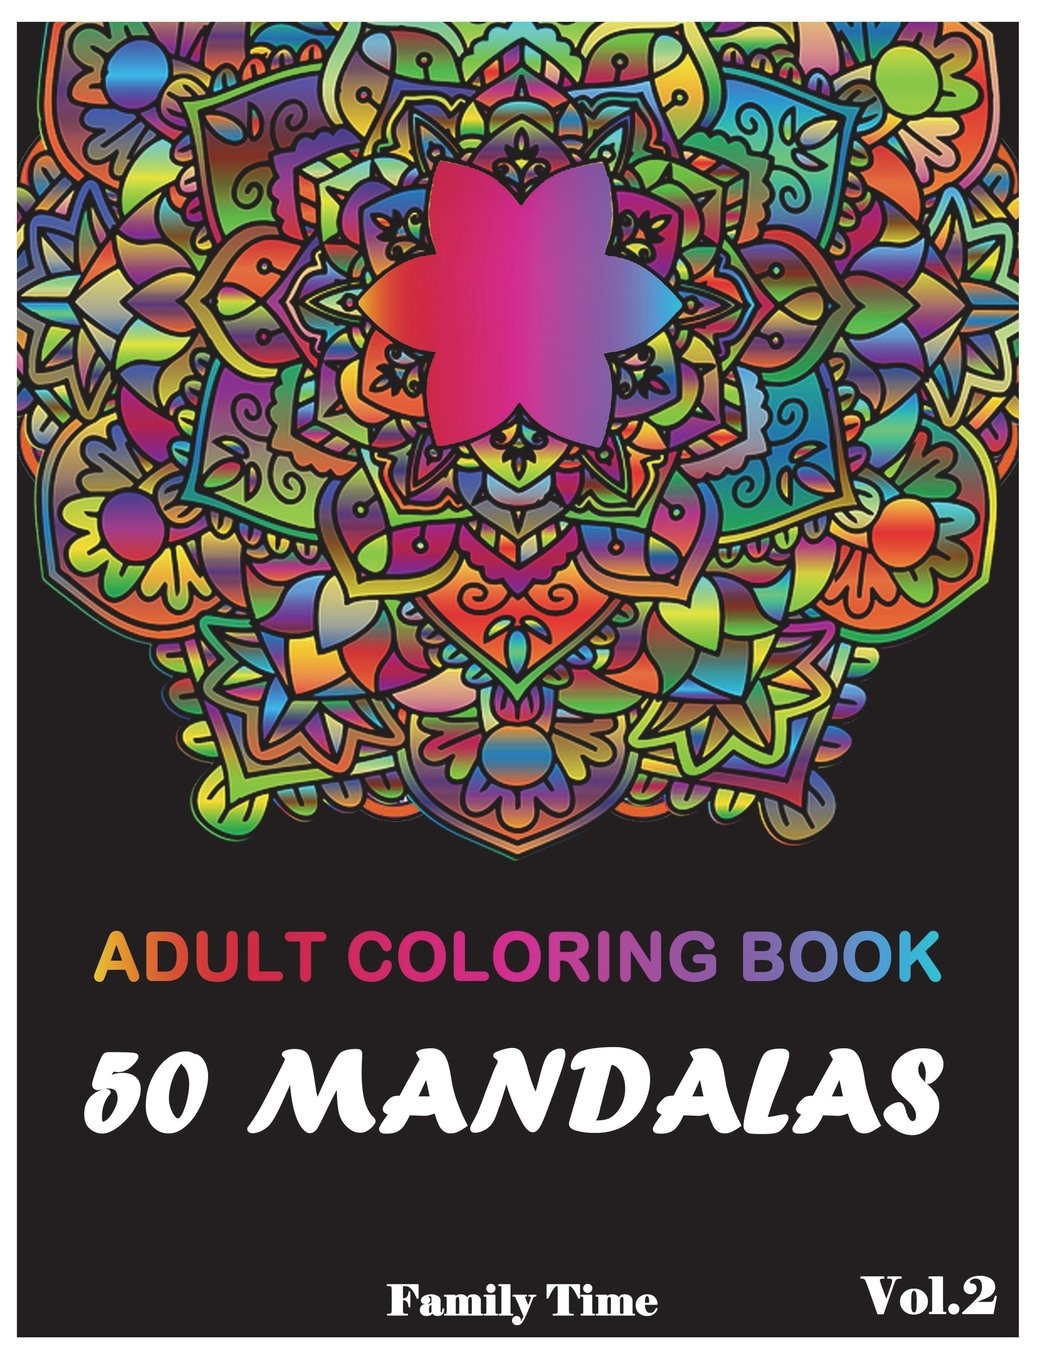 Download Mandala Adult Coloring Book: 50+ Mandala Images Stress Relieving Patterns Coloring Book For Relaxation, Meditation, Happiness and Relief & Art Color Therapy(Volume 2) (50 Mandala Adult Coloring Book) PDF